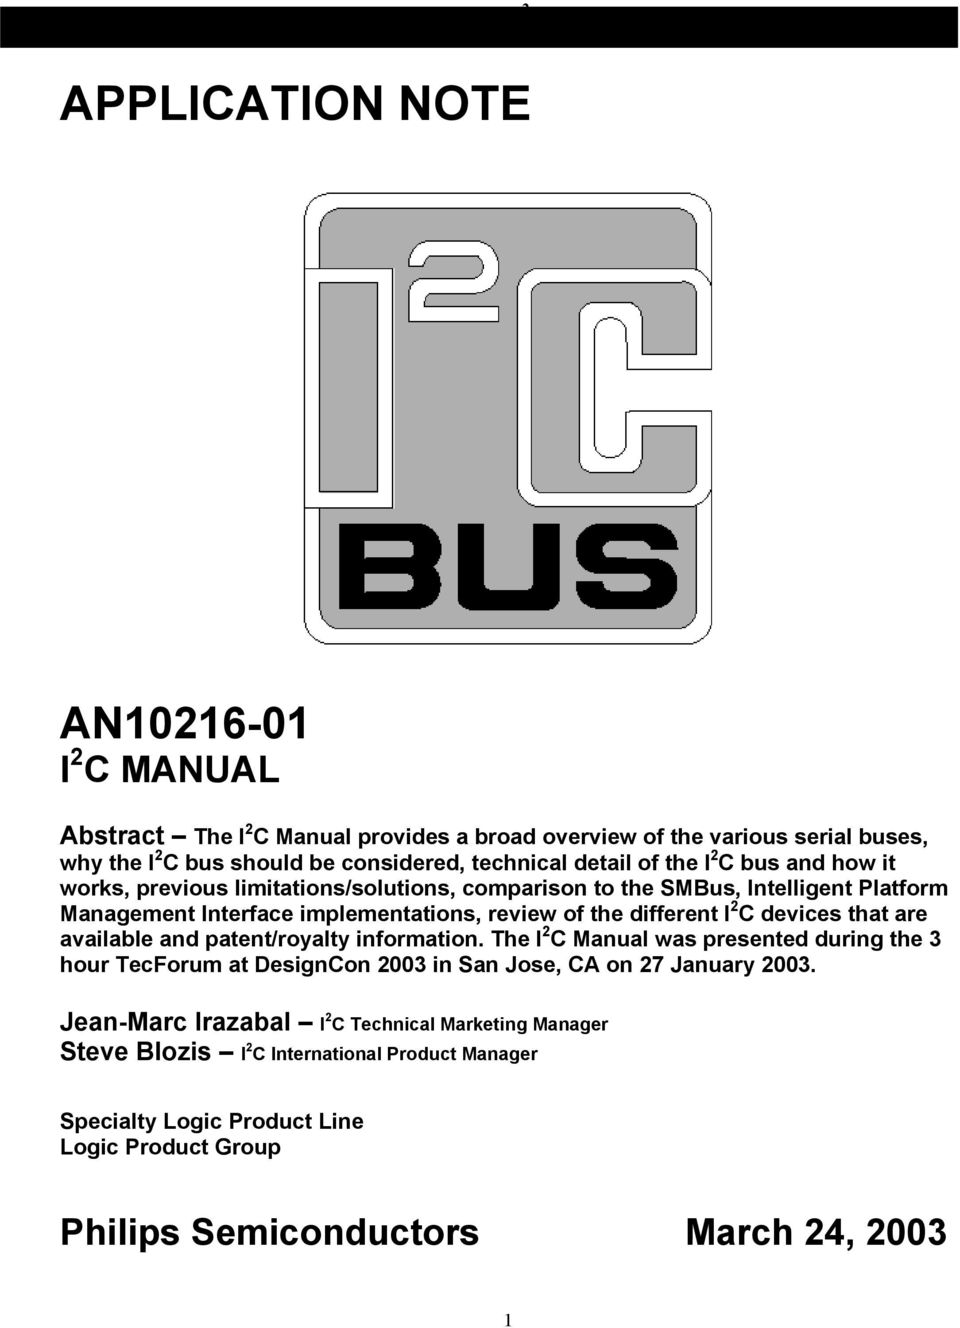 the different I 2 C devices that are available and patent/royalty information. The I 2 C Manual was presented during the 3 hour TecForum at DesignCon 2003 in San Jose, CA on 27 January 2003.